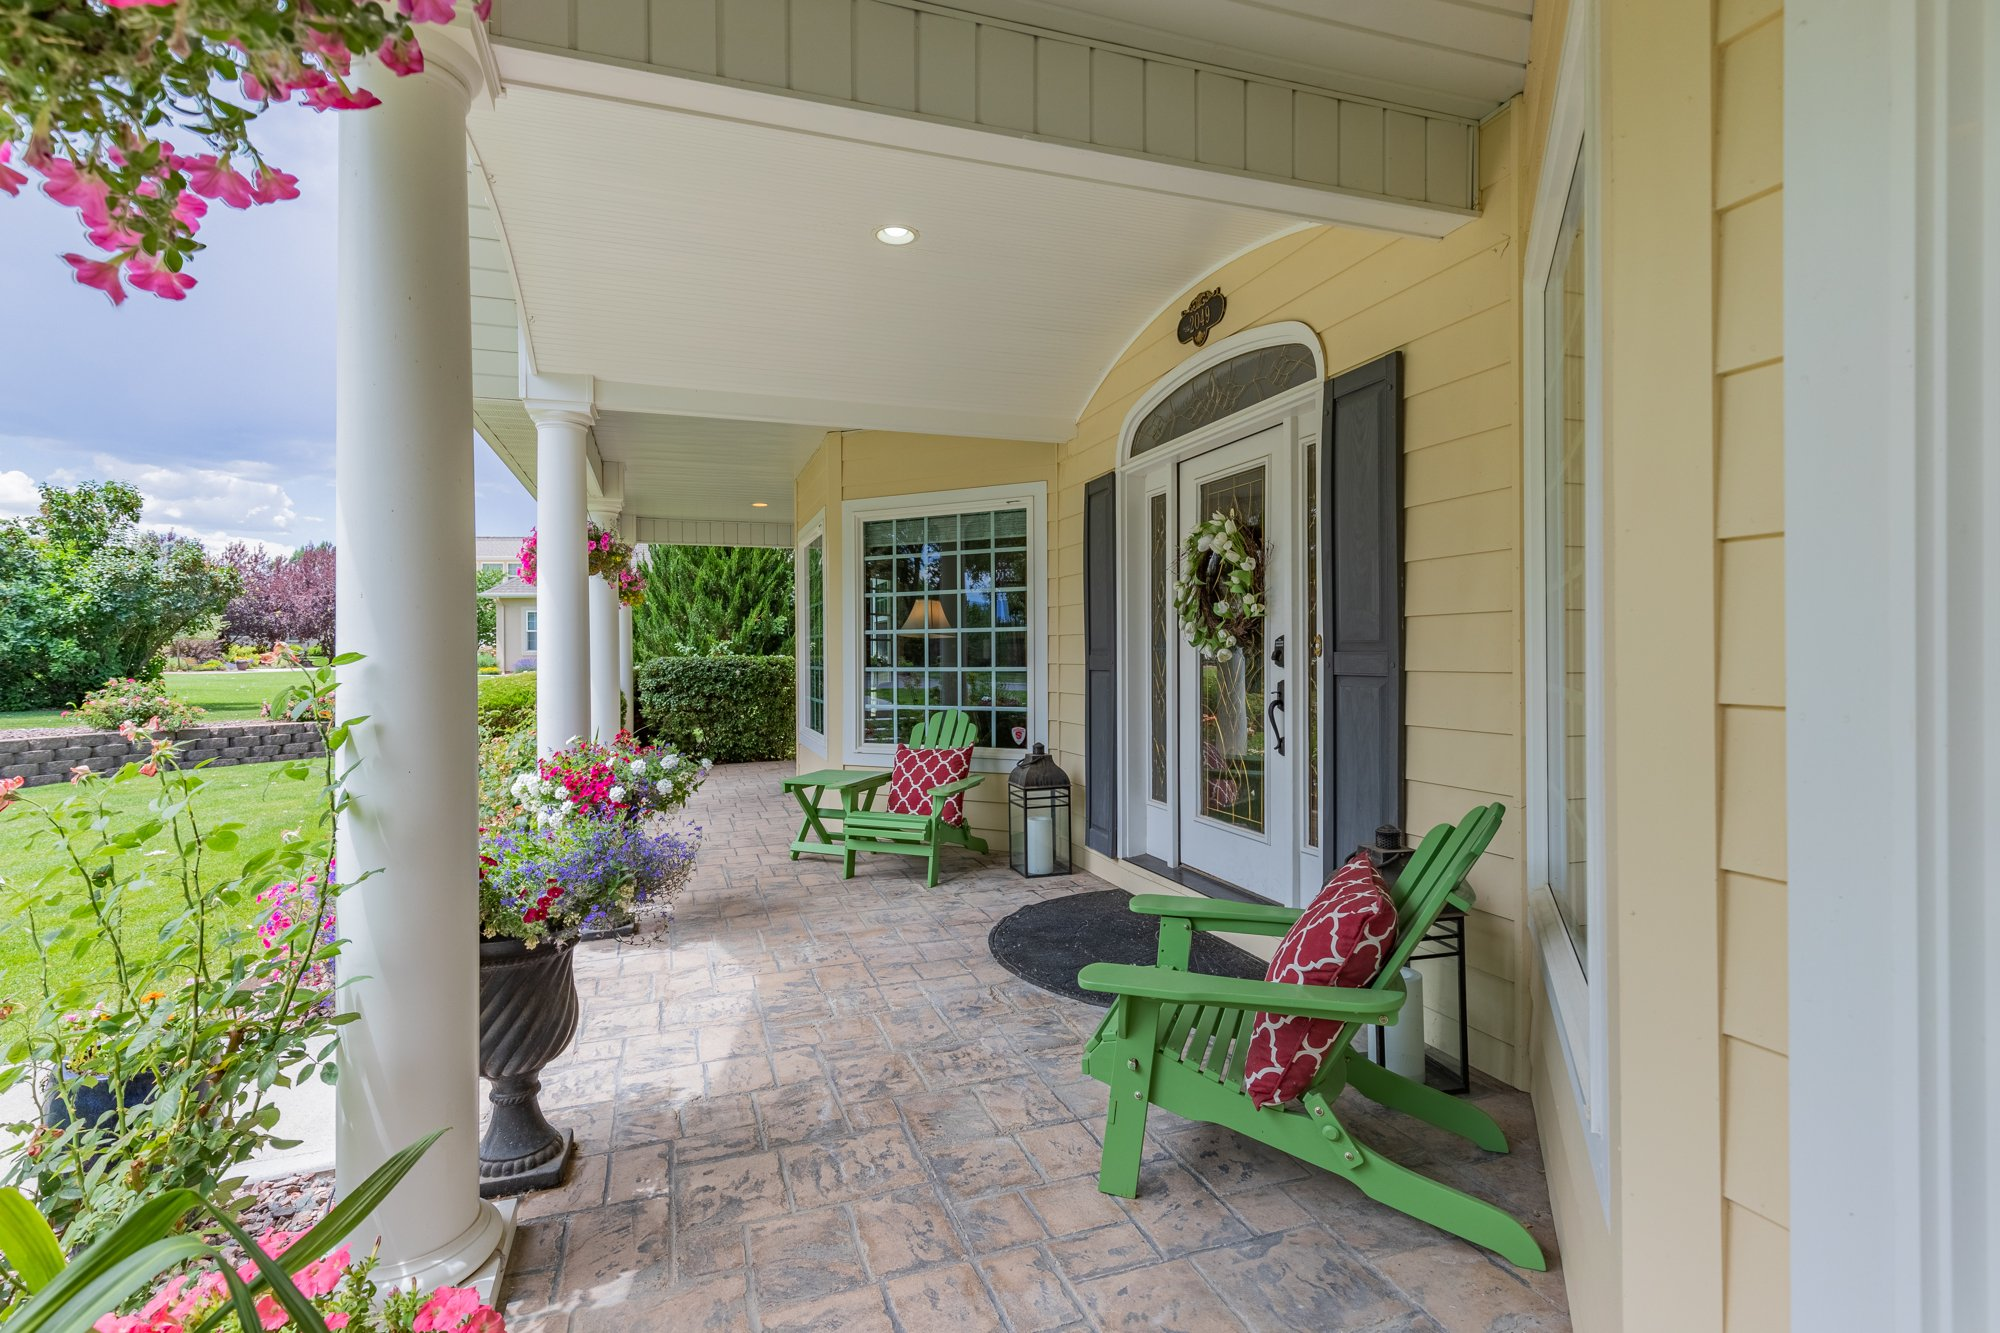 Covered Front Porch - 2049 Brook Way Montrose, Co 81403 - Atha Team Luxury Real Estate